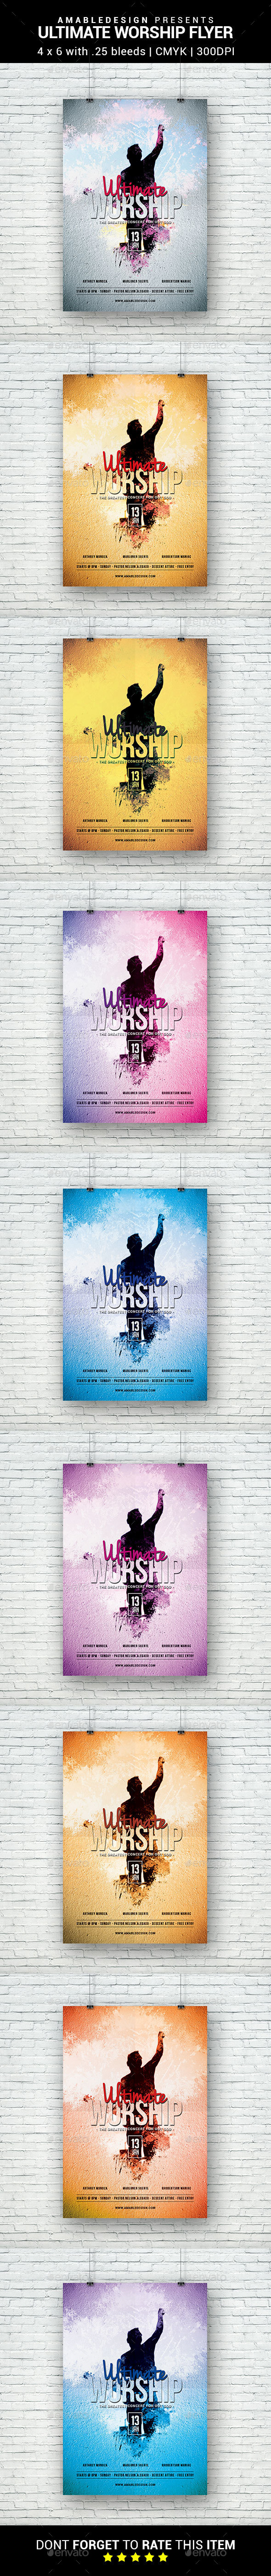 Ultimate Worship Flyer - Clubs & Parties Events